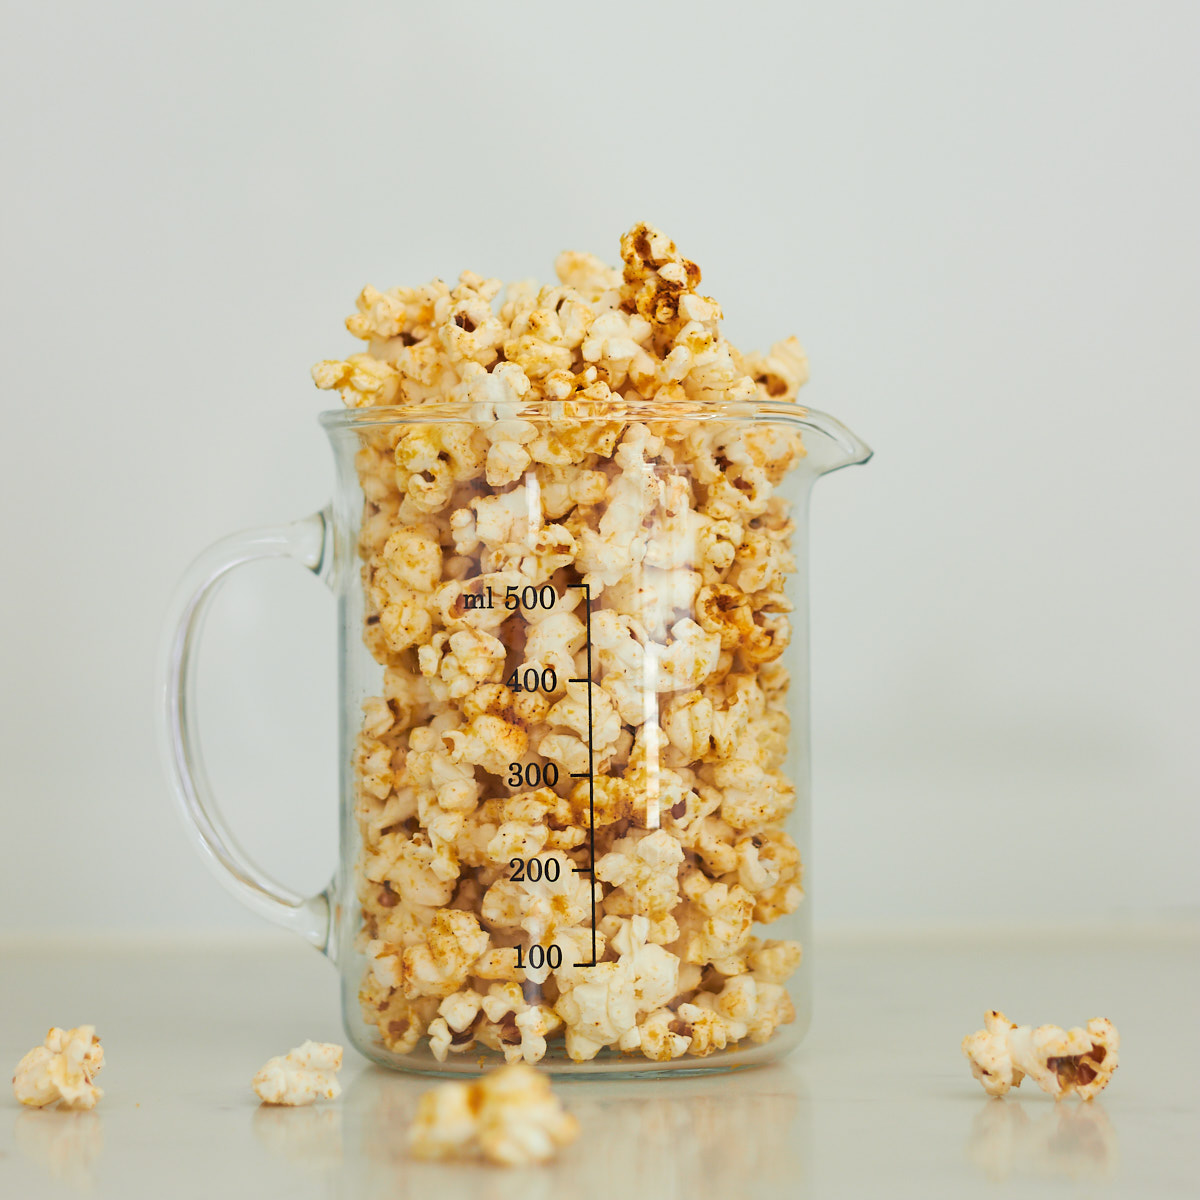 Savoury Smoky Cheesy Popcorn